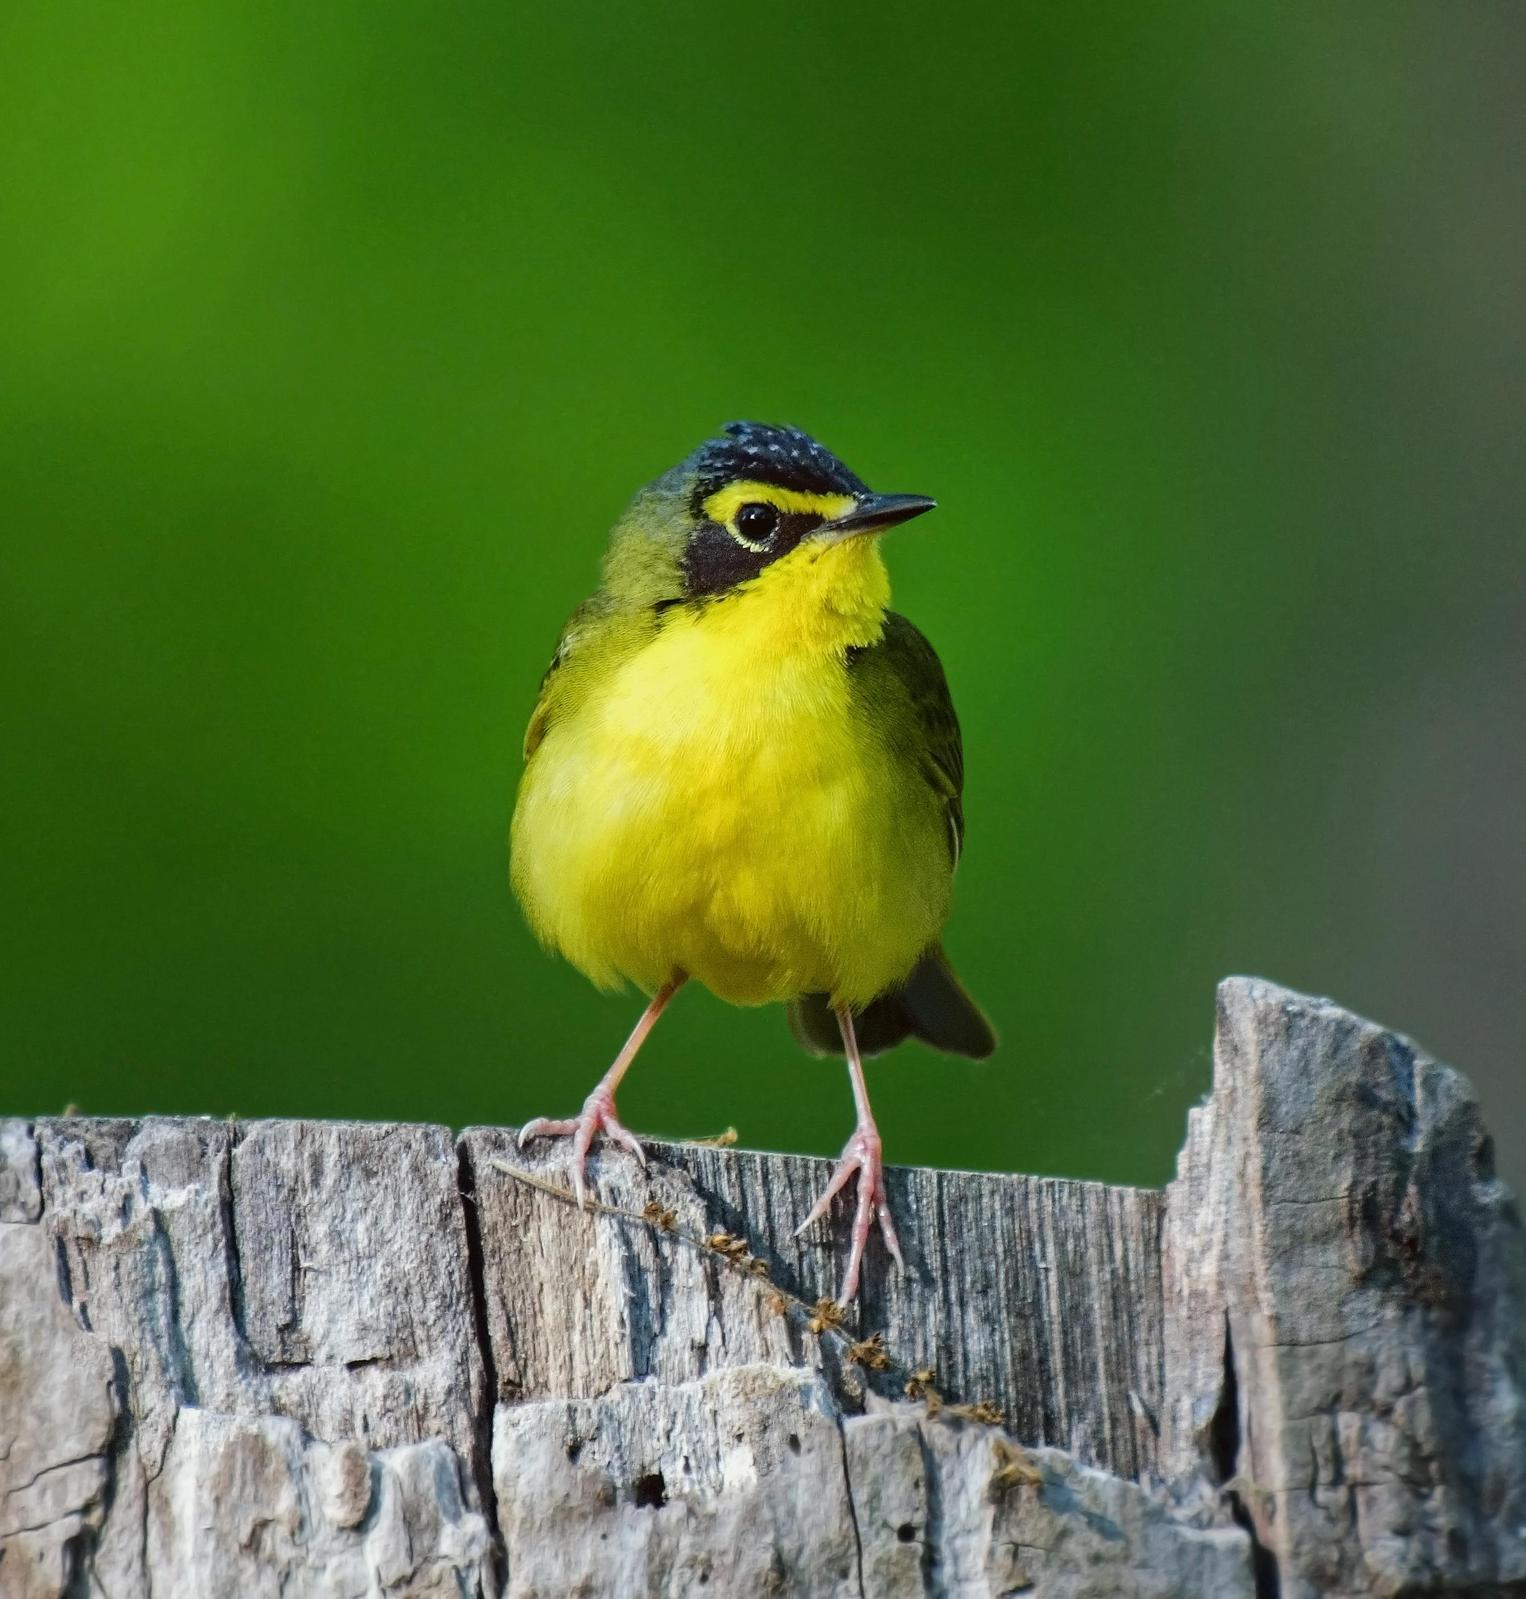 Kentucky Warbler Photo by Joseph Pescatore